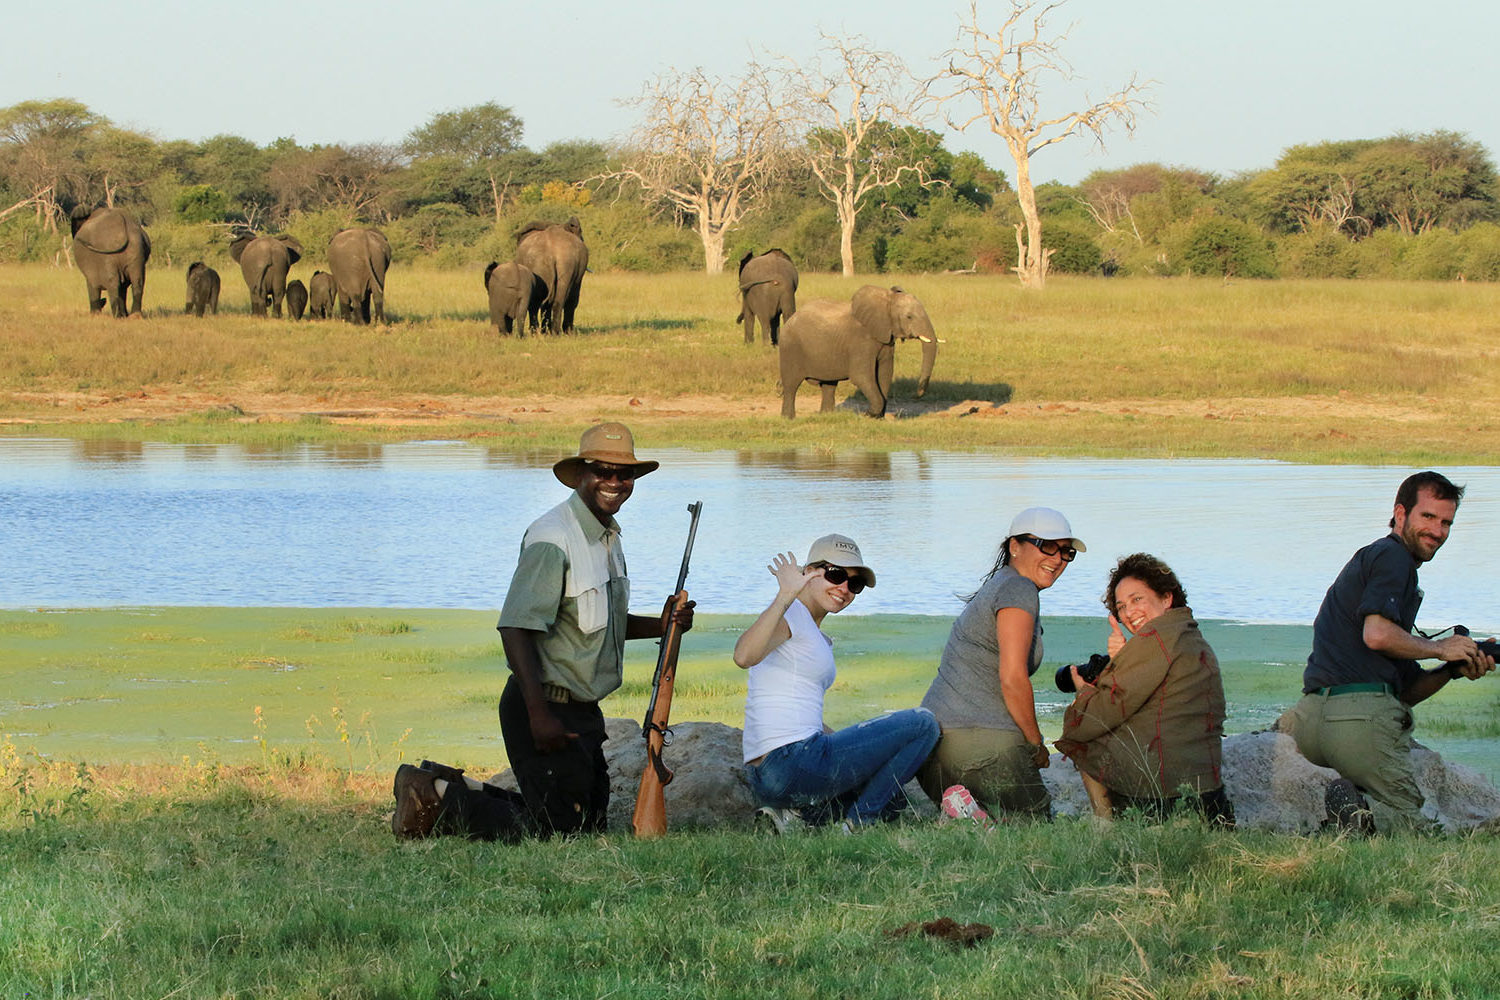 bomani tented lodge hwange-national-park-lodges-zimbabwe-accommodation-walking-safari-guide-elephants